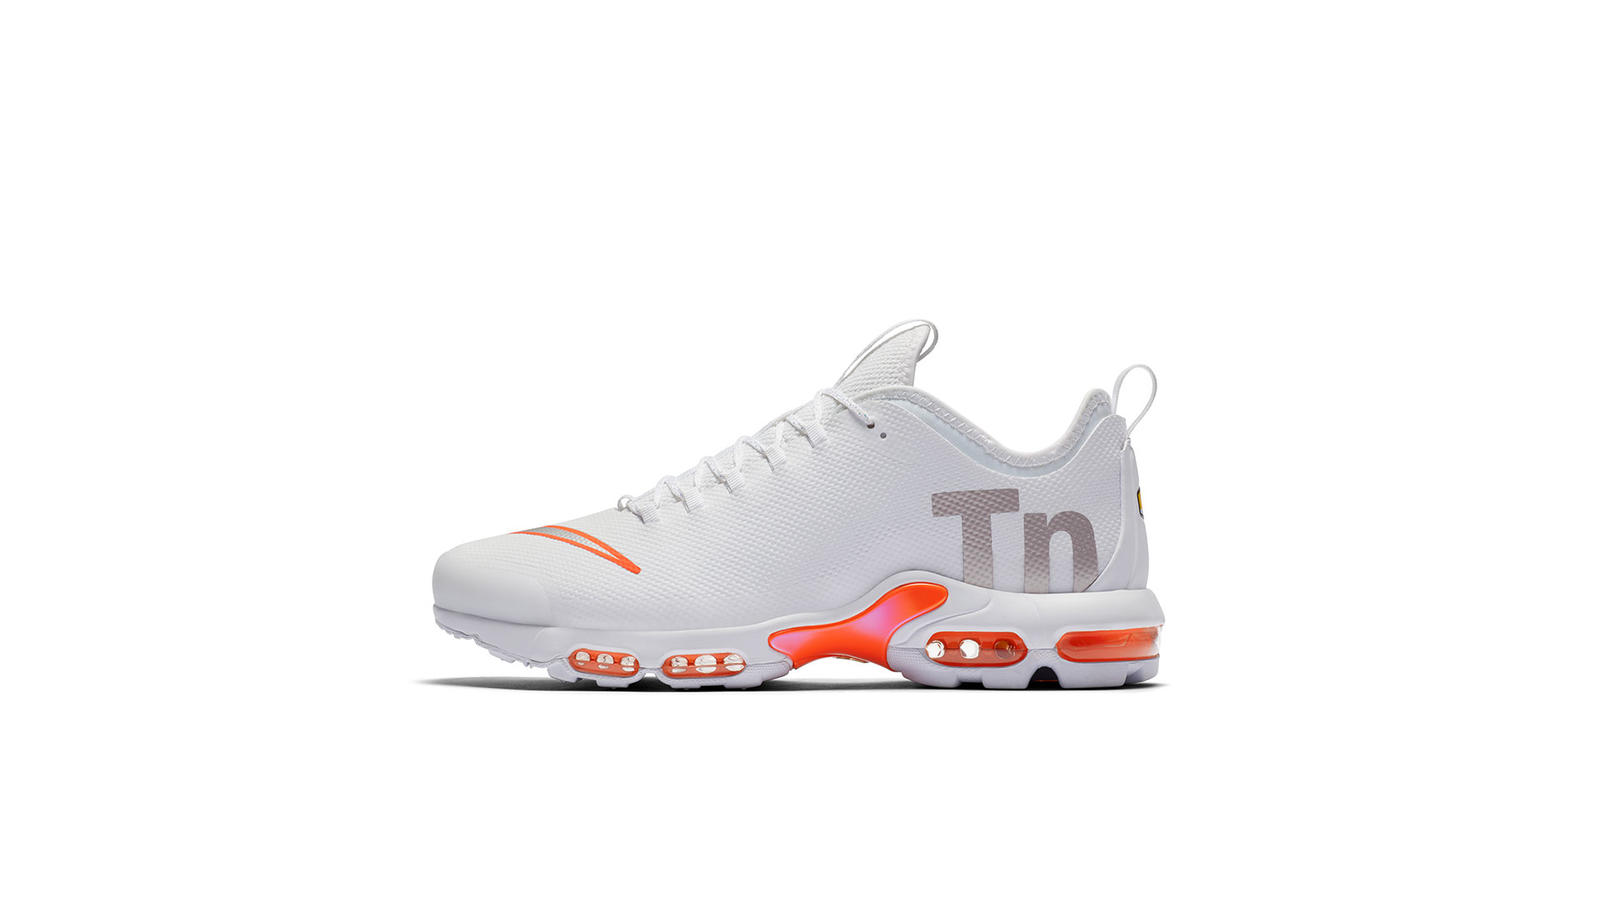 brand new fb5ec 358f0 May 16, 2018 - The Nike Air Max Plus hit shelves in 1998 and launched into  global popularity with its daring design and innovative manufacturing  background.